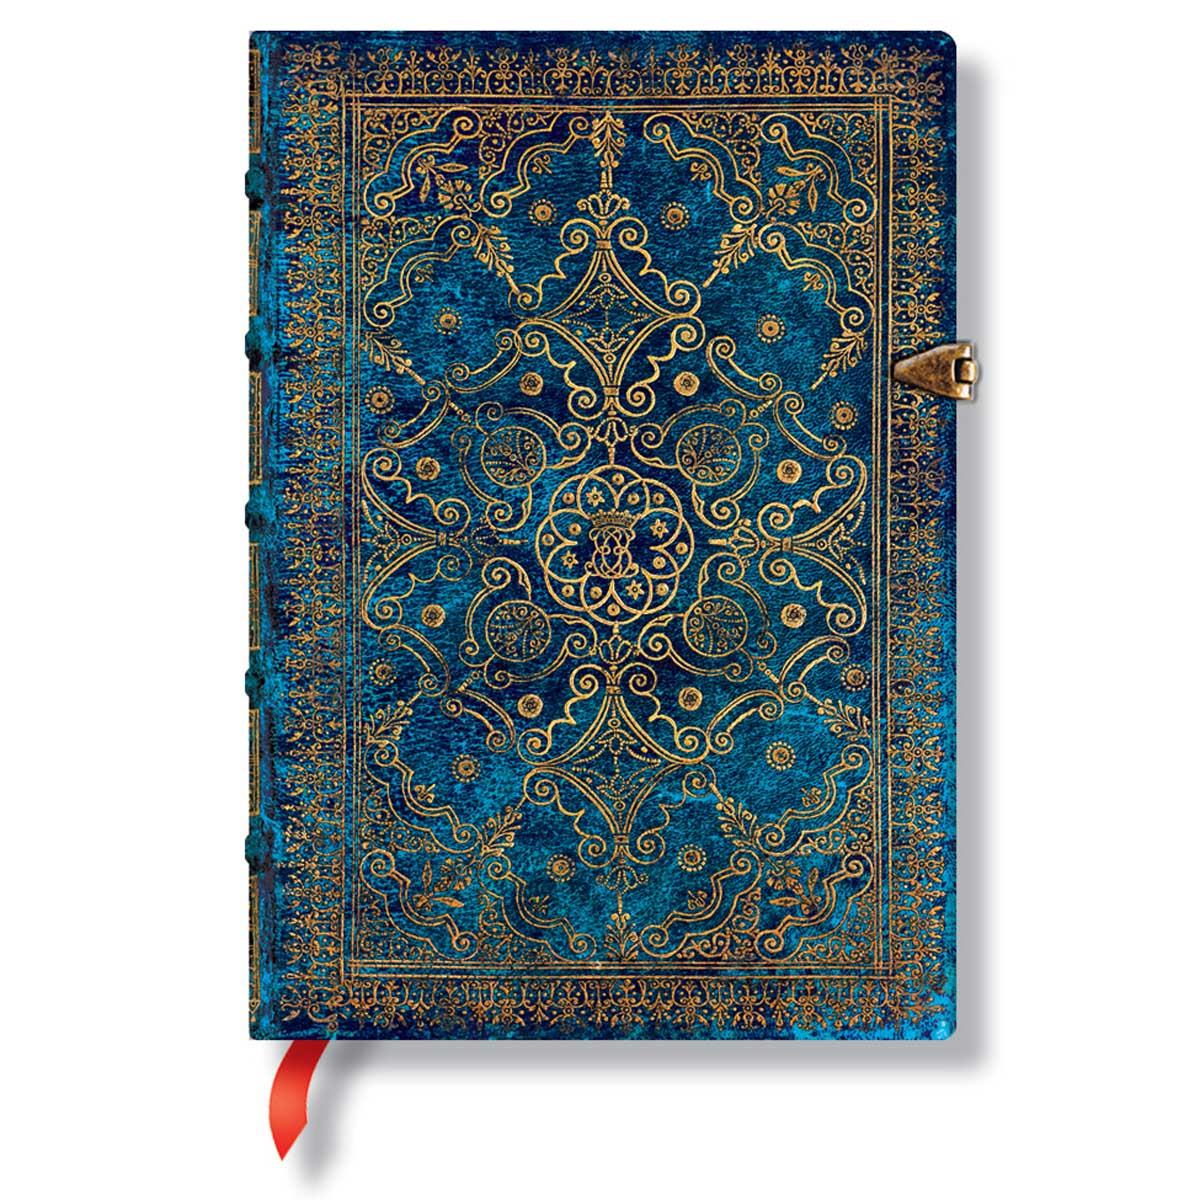 Paperblanks Equinoxe Azure Midi 5x7 inch Journal